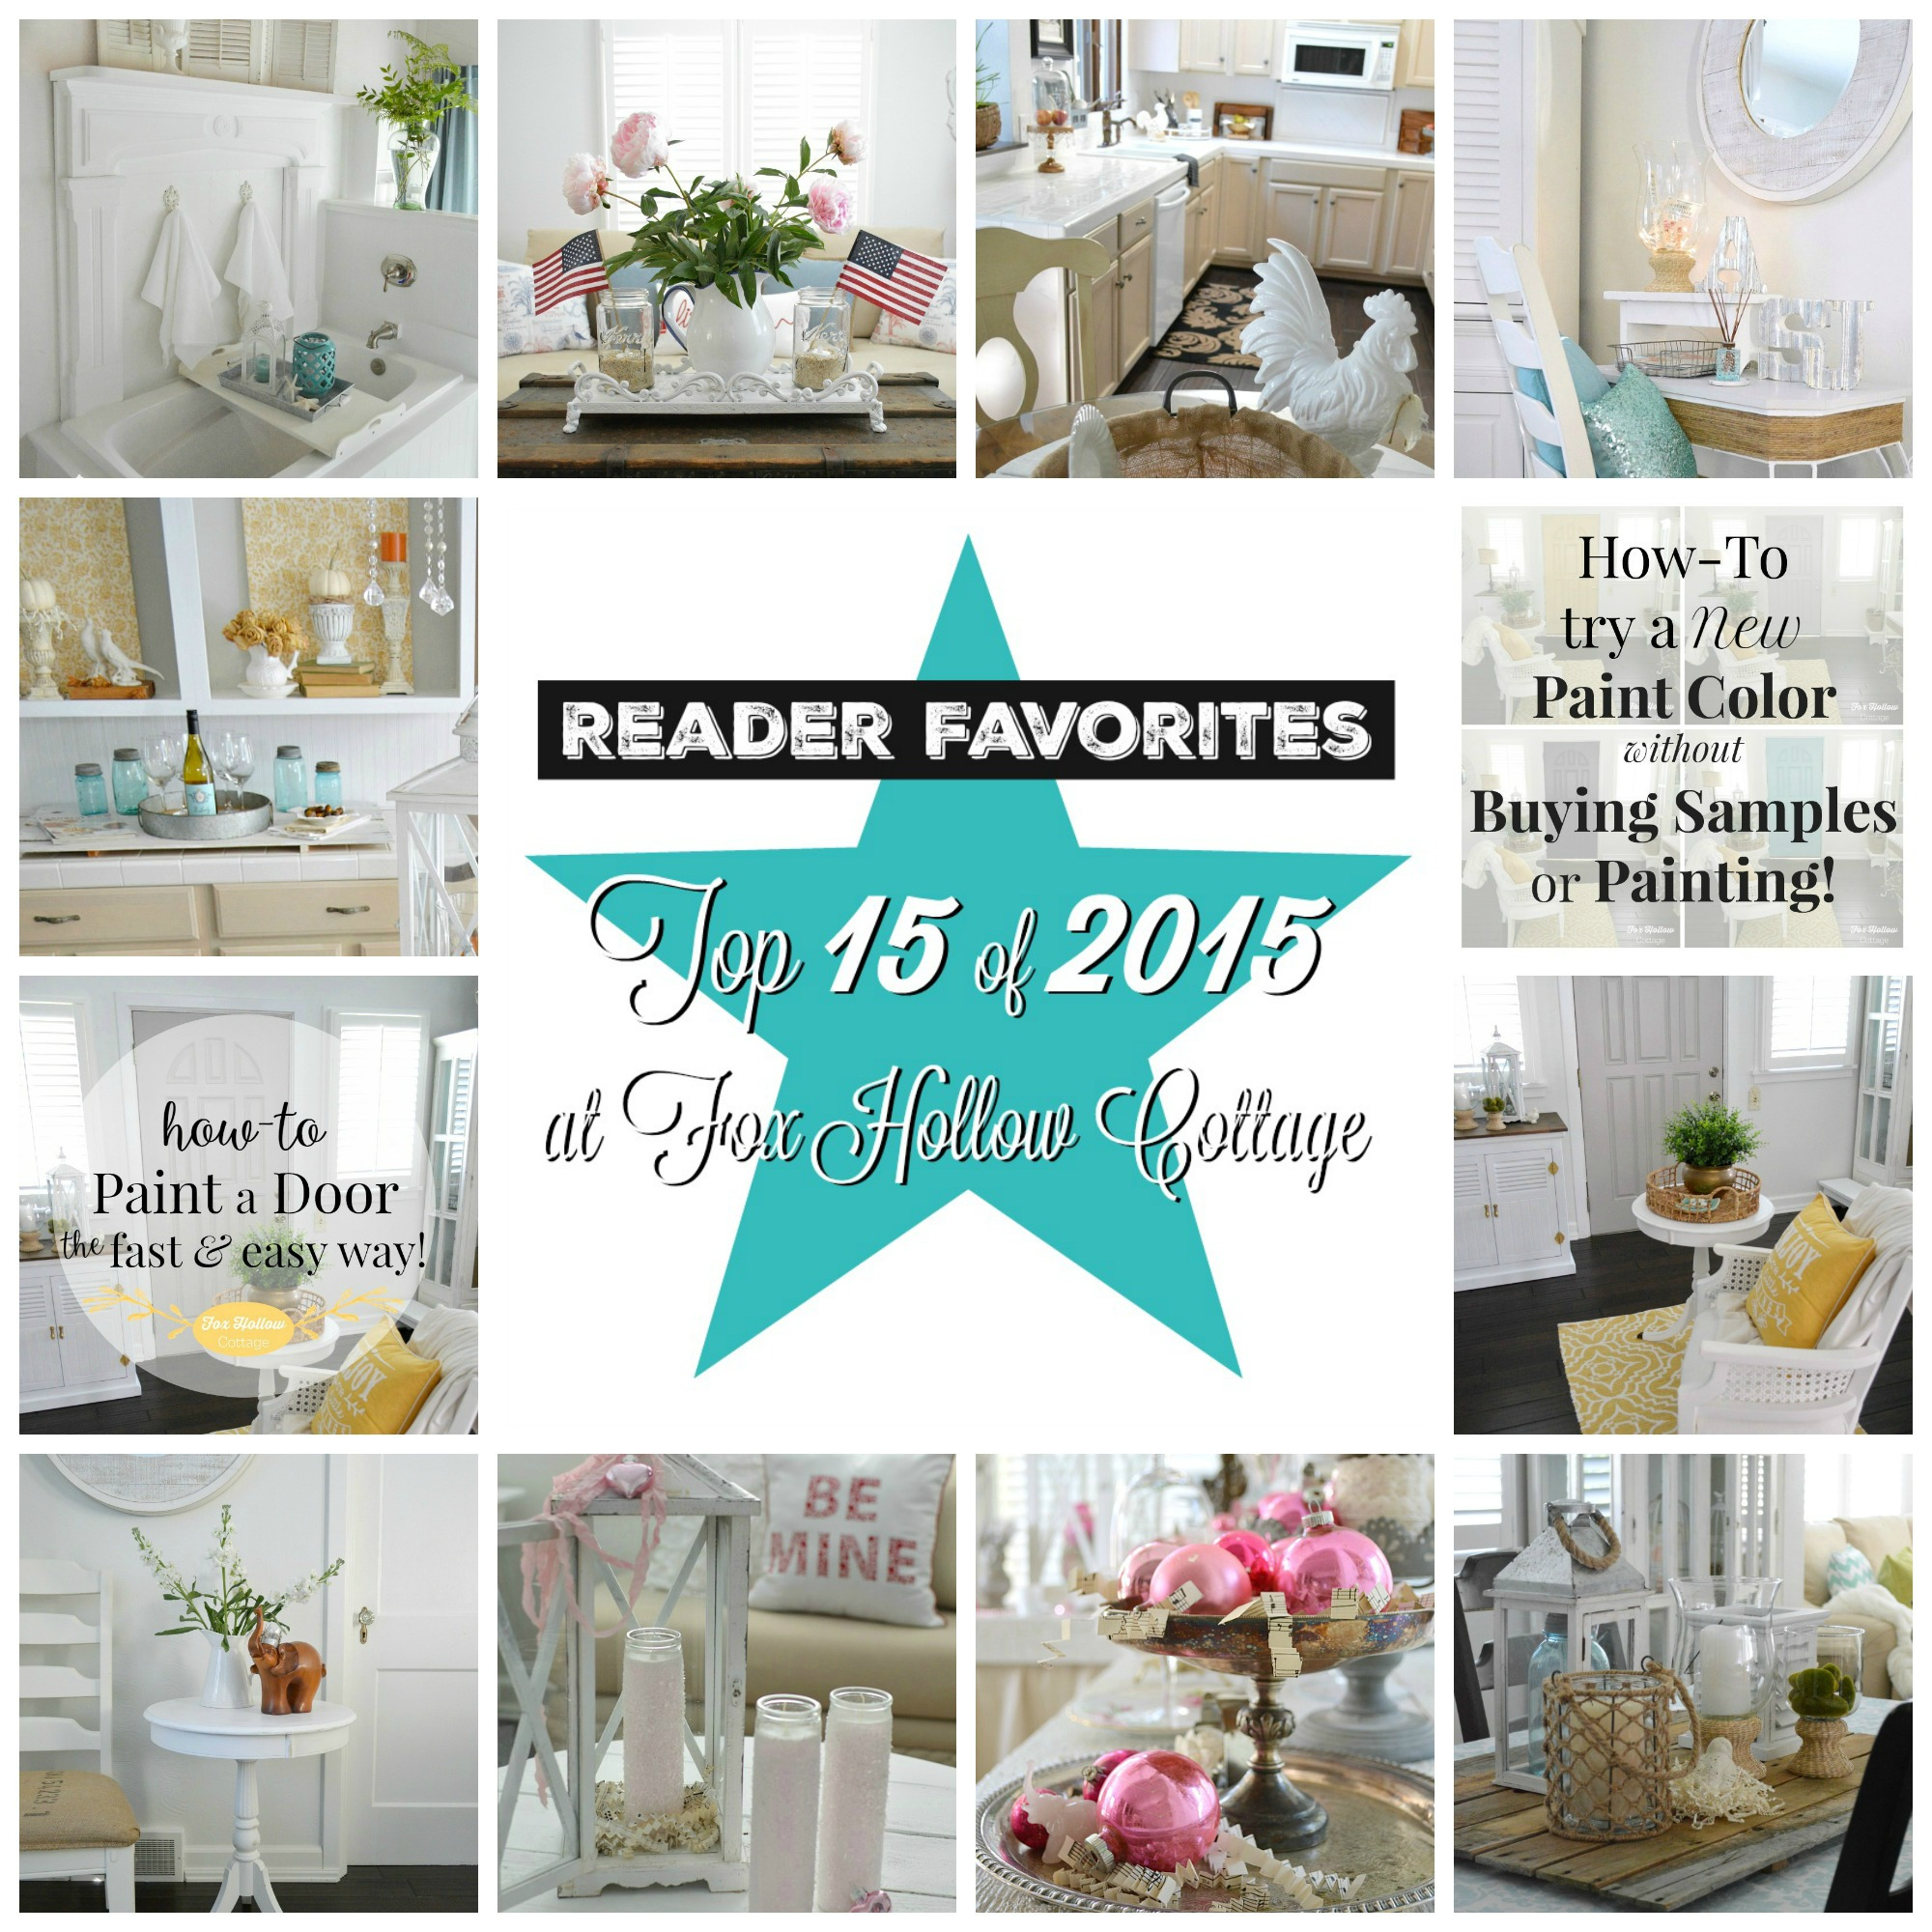 Exceptionnel Top 15 DIY, Craft And Home Decorating Projects Of 2015